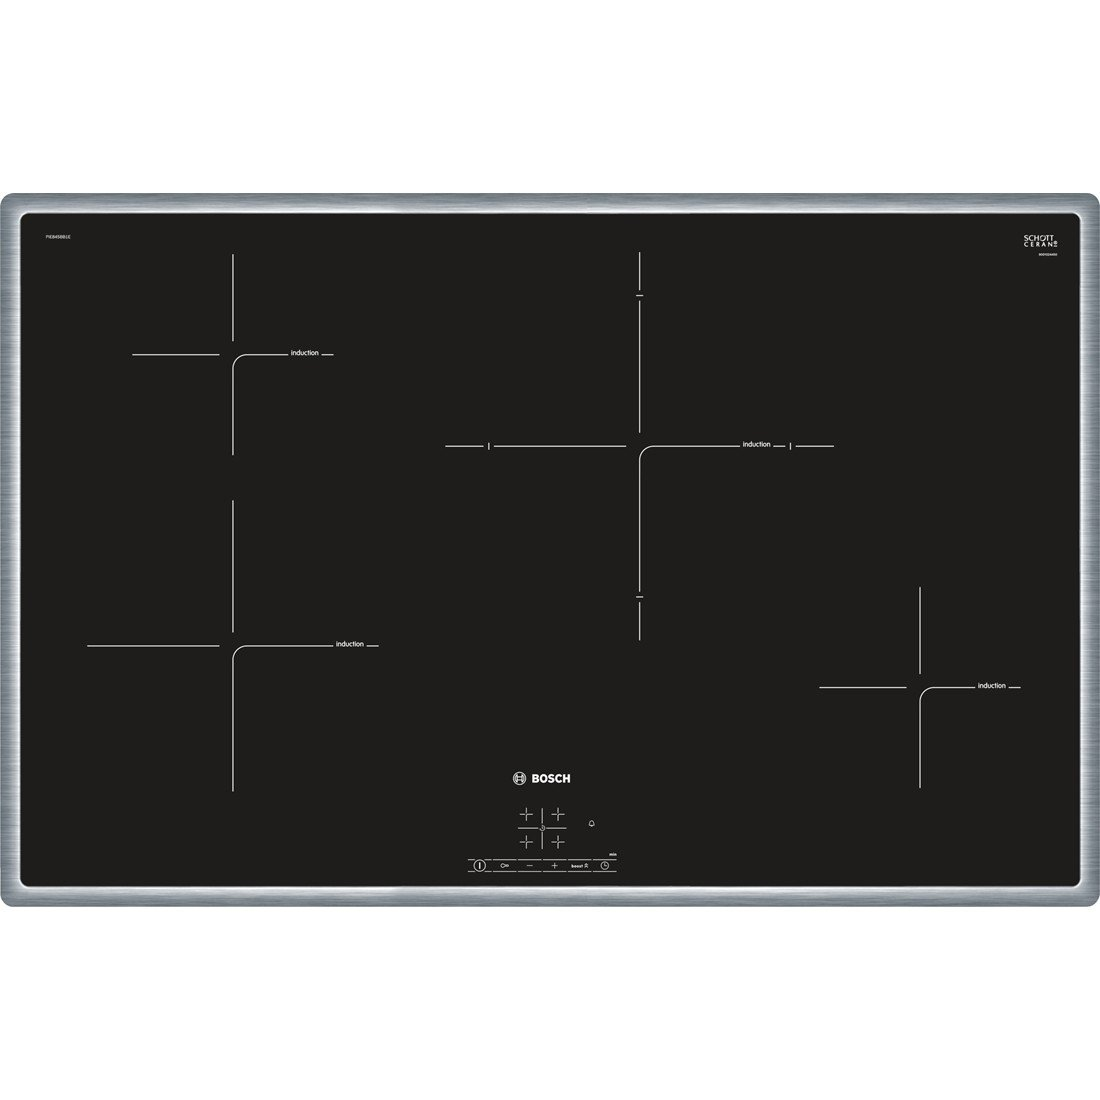 Bosch PIE845BB1E hobs Integrado Con - Placa (Integrado, Con ...